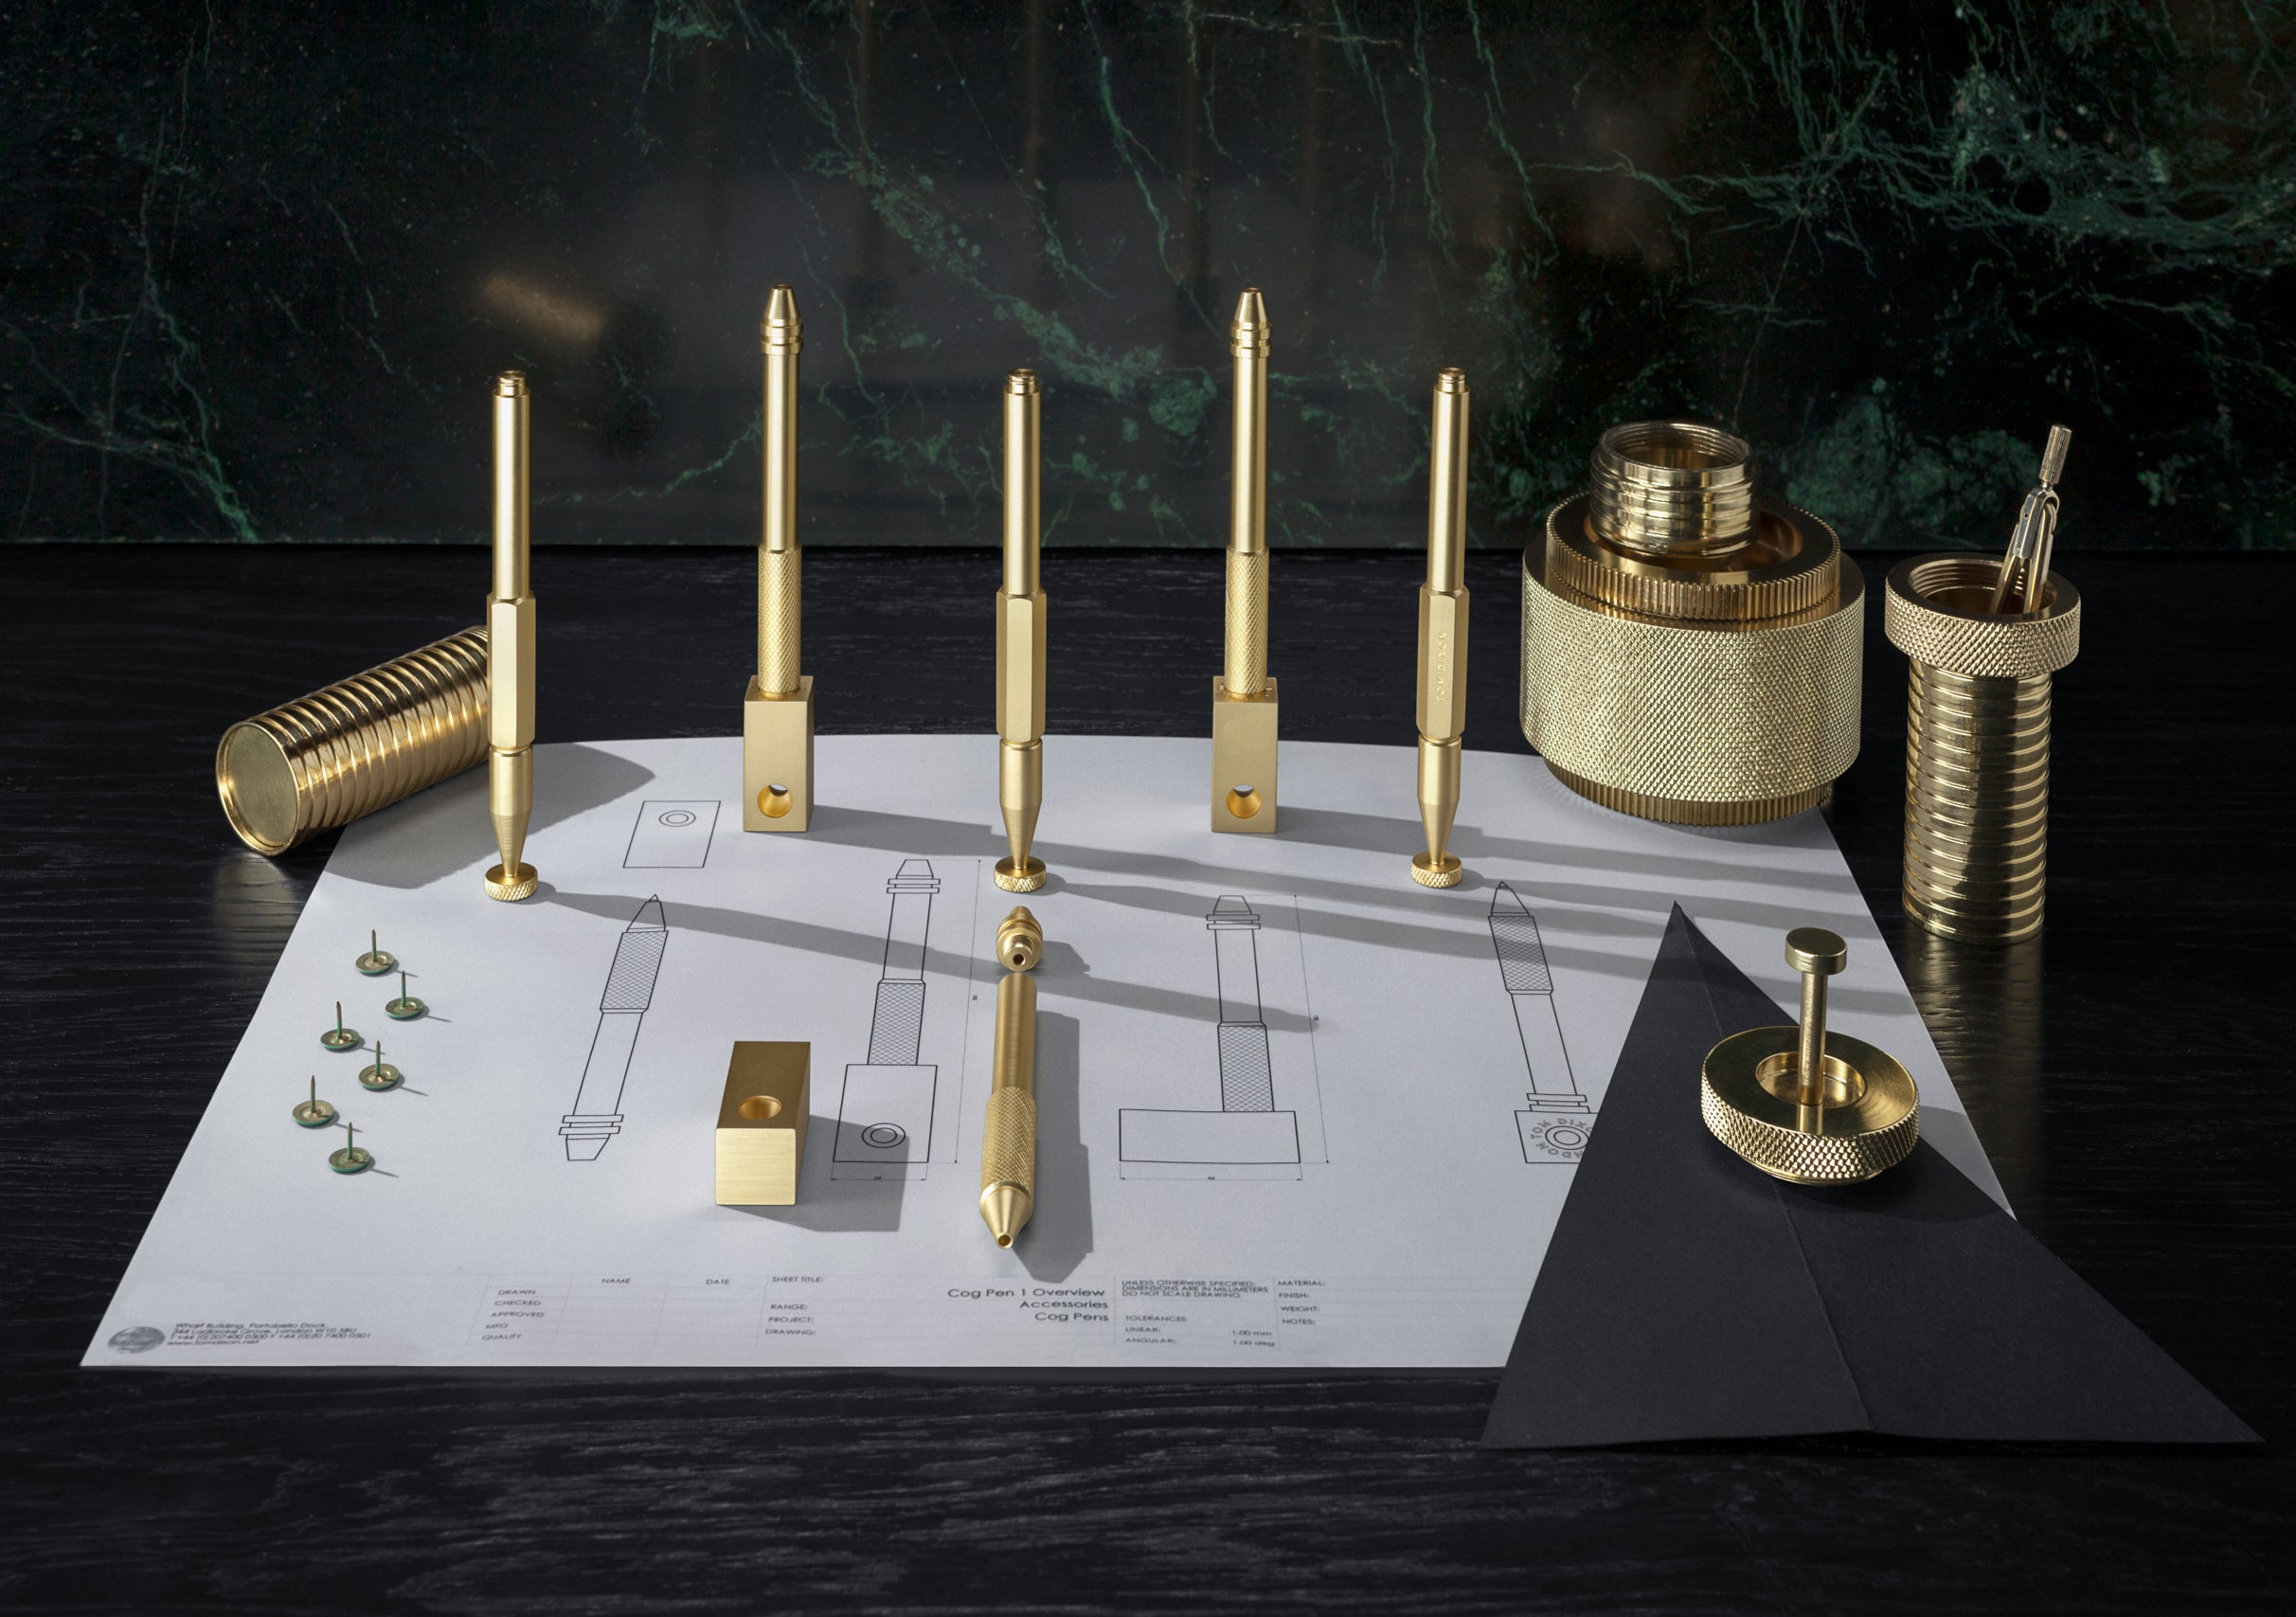 Tom Dixon Cog Pen collection